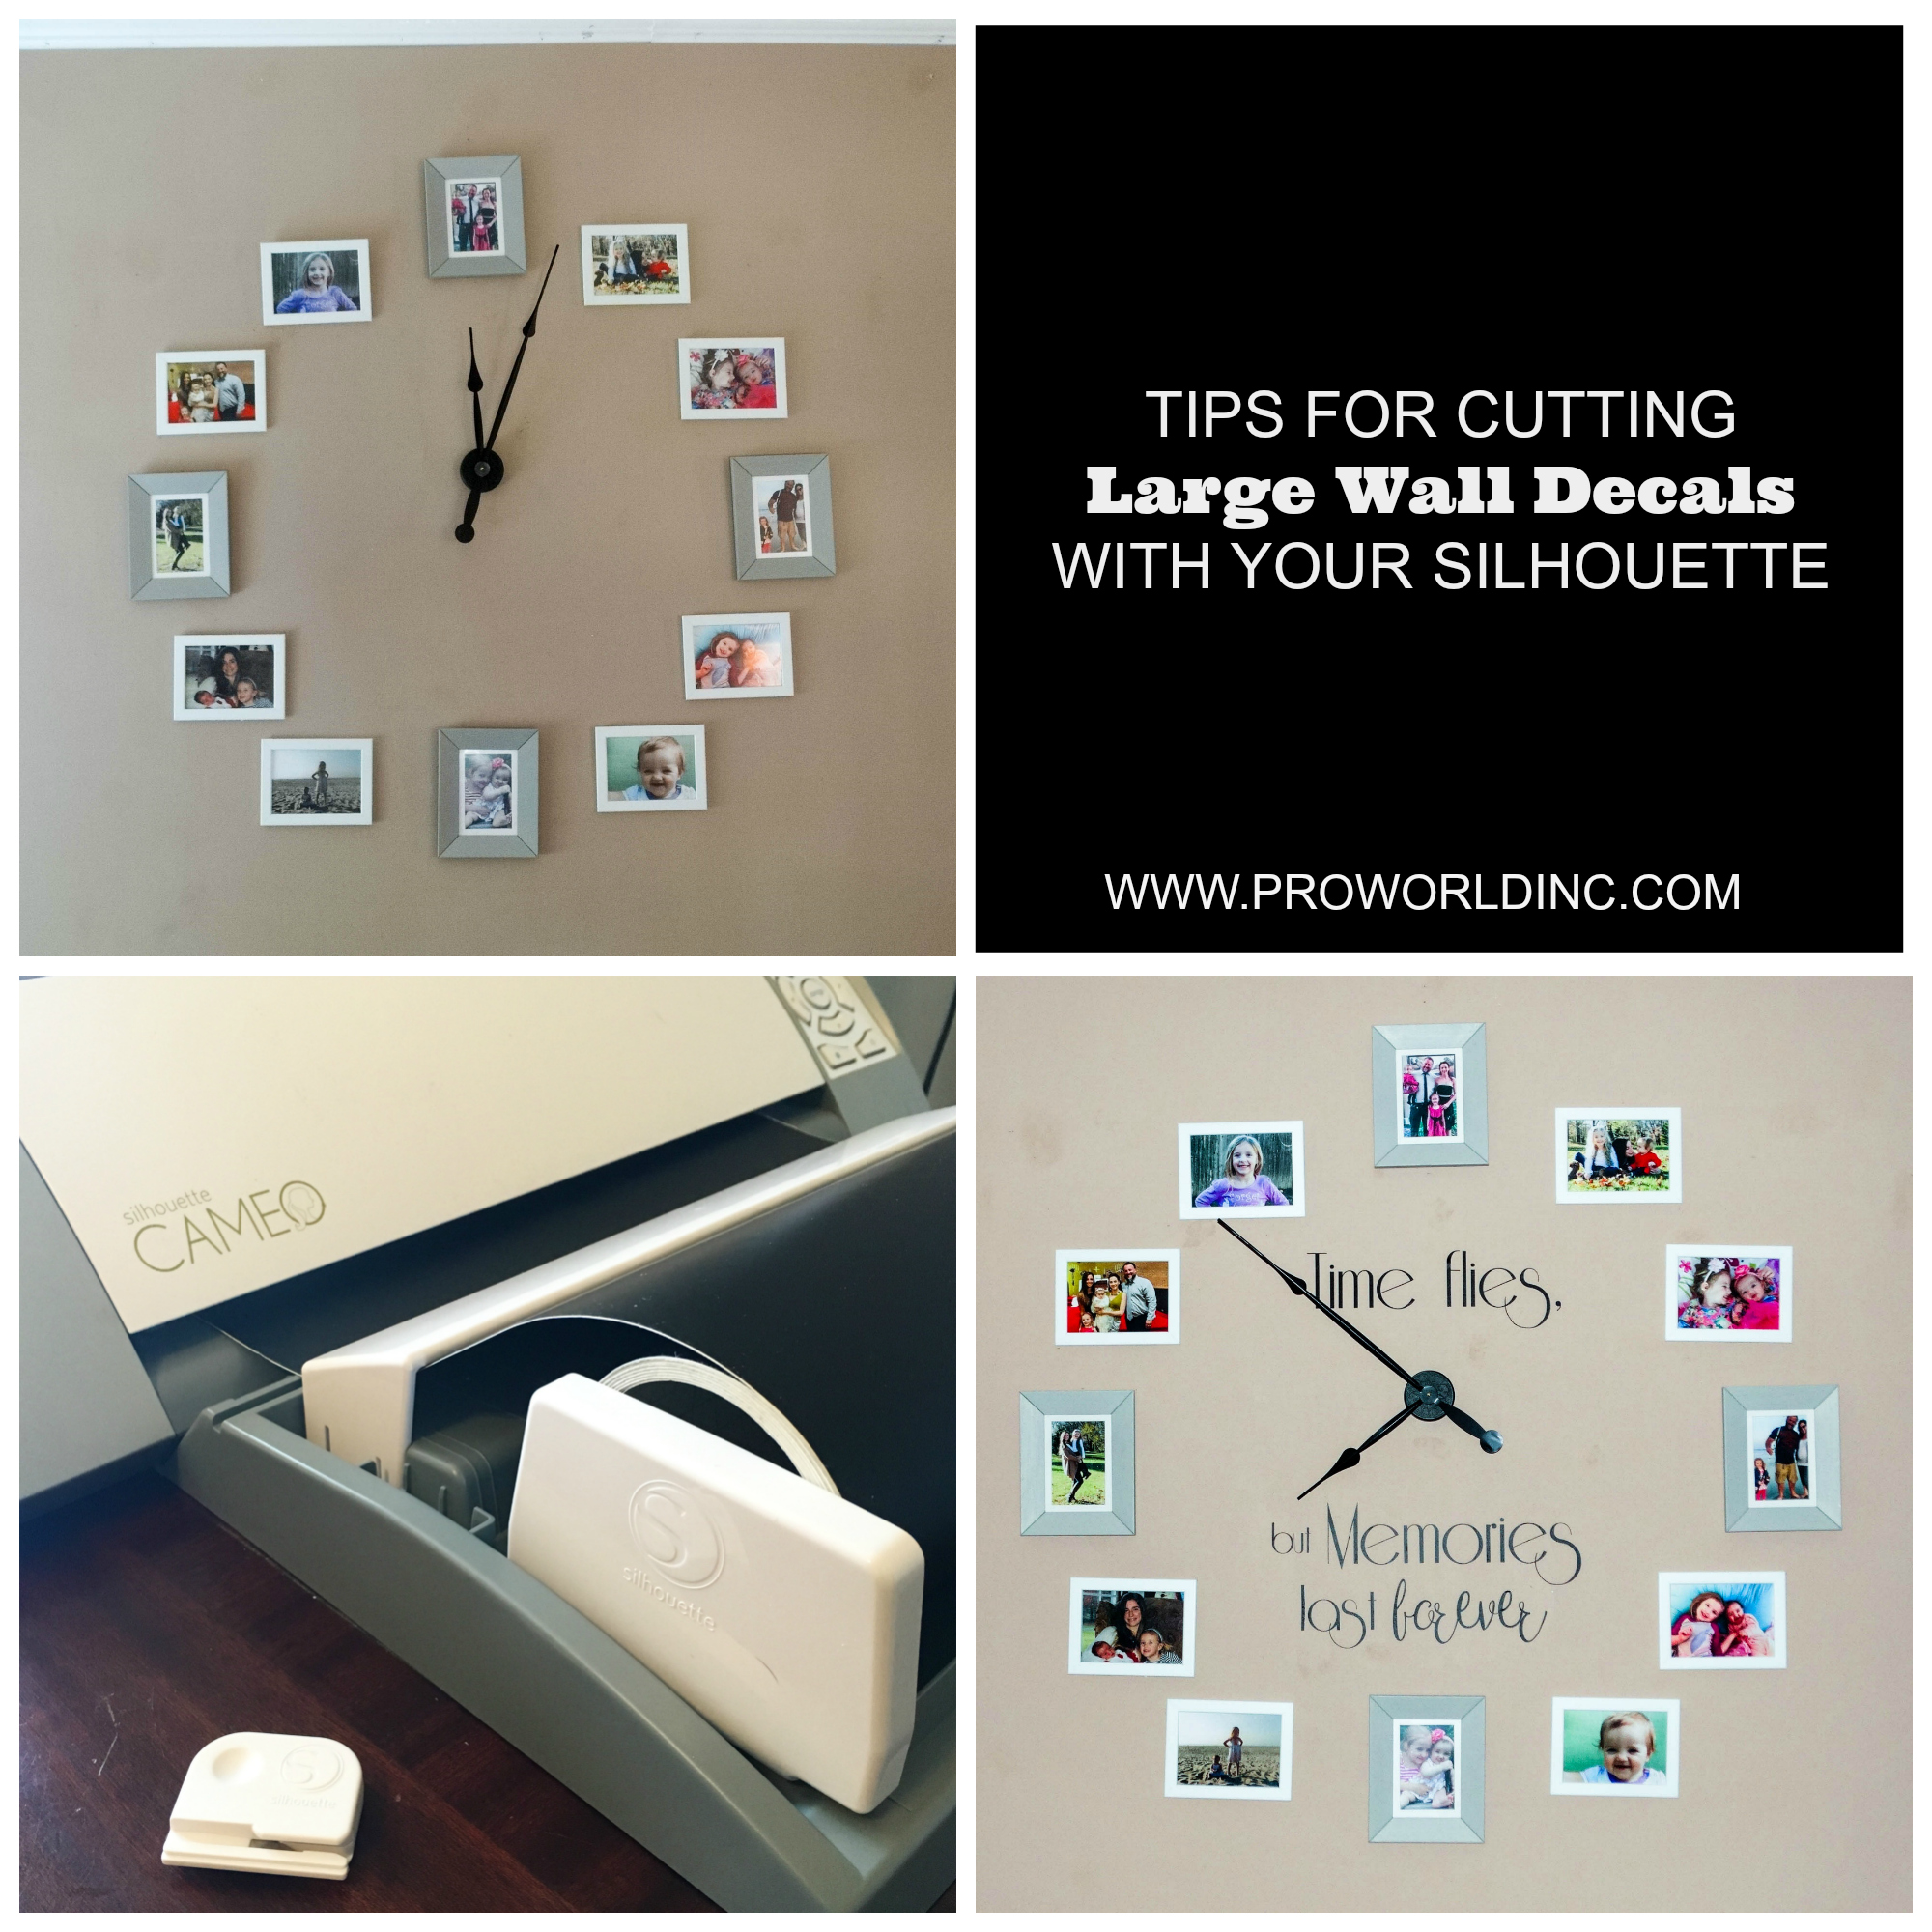 tips for cutting large vinyl decals with your silhouette machine